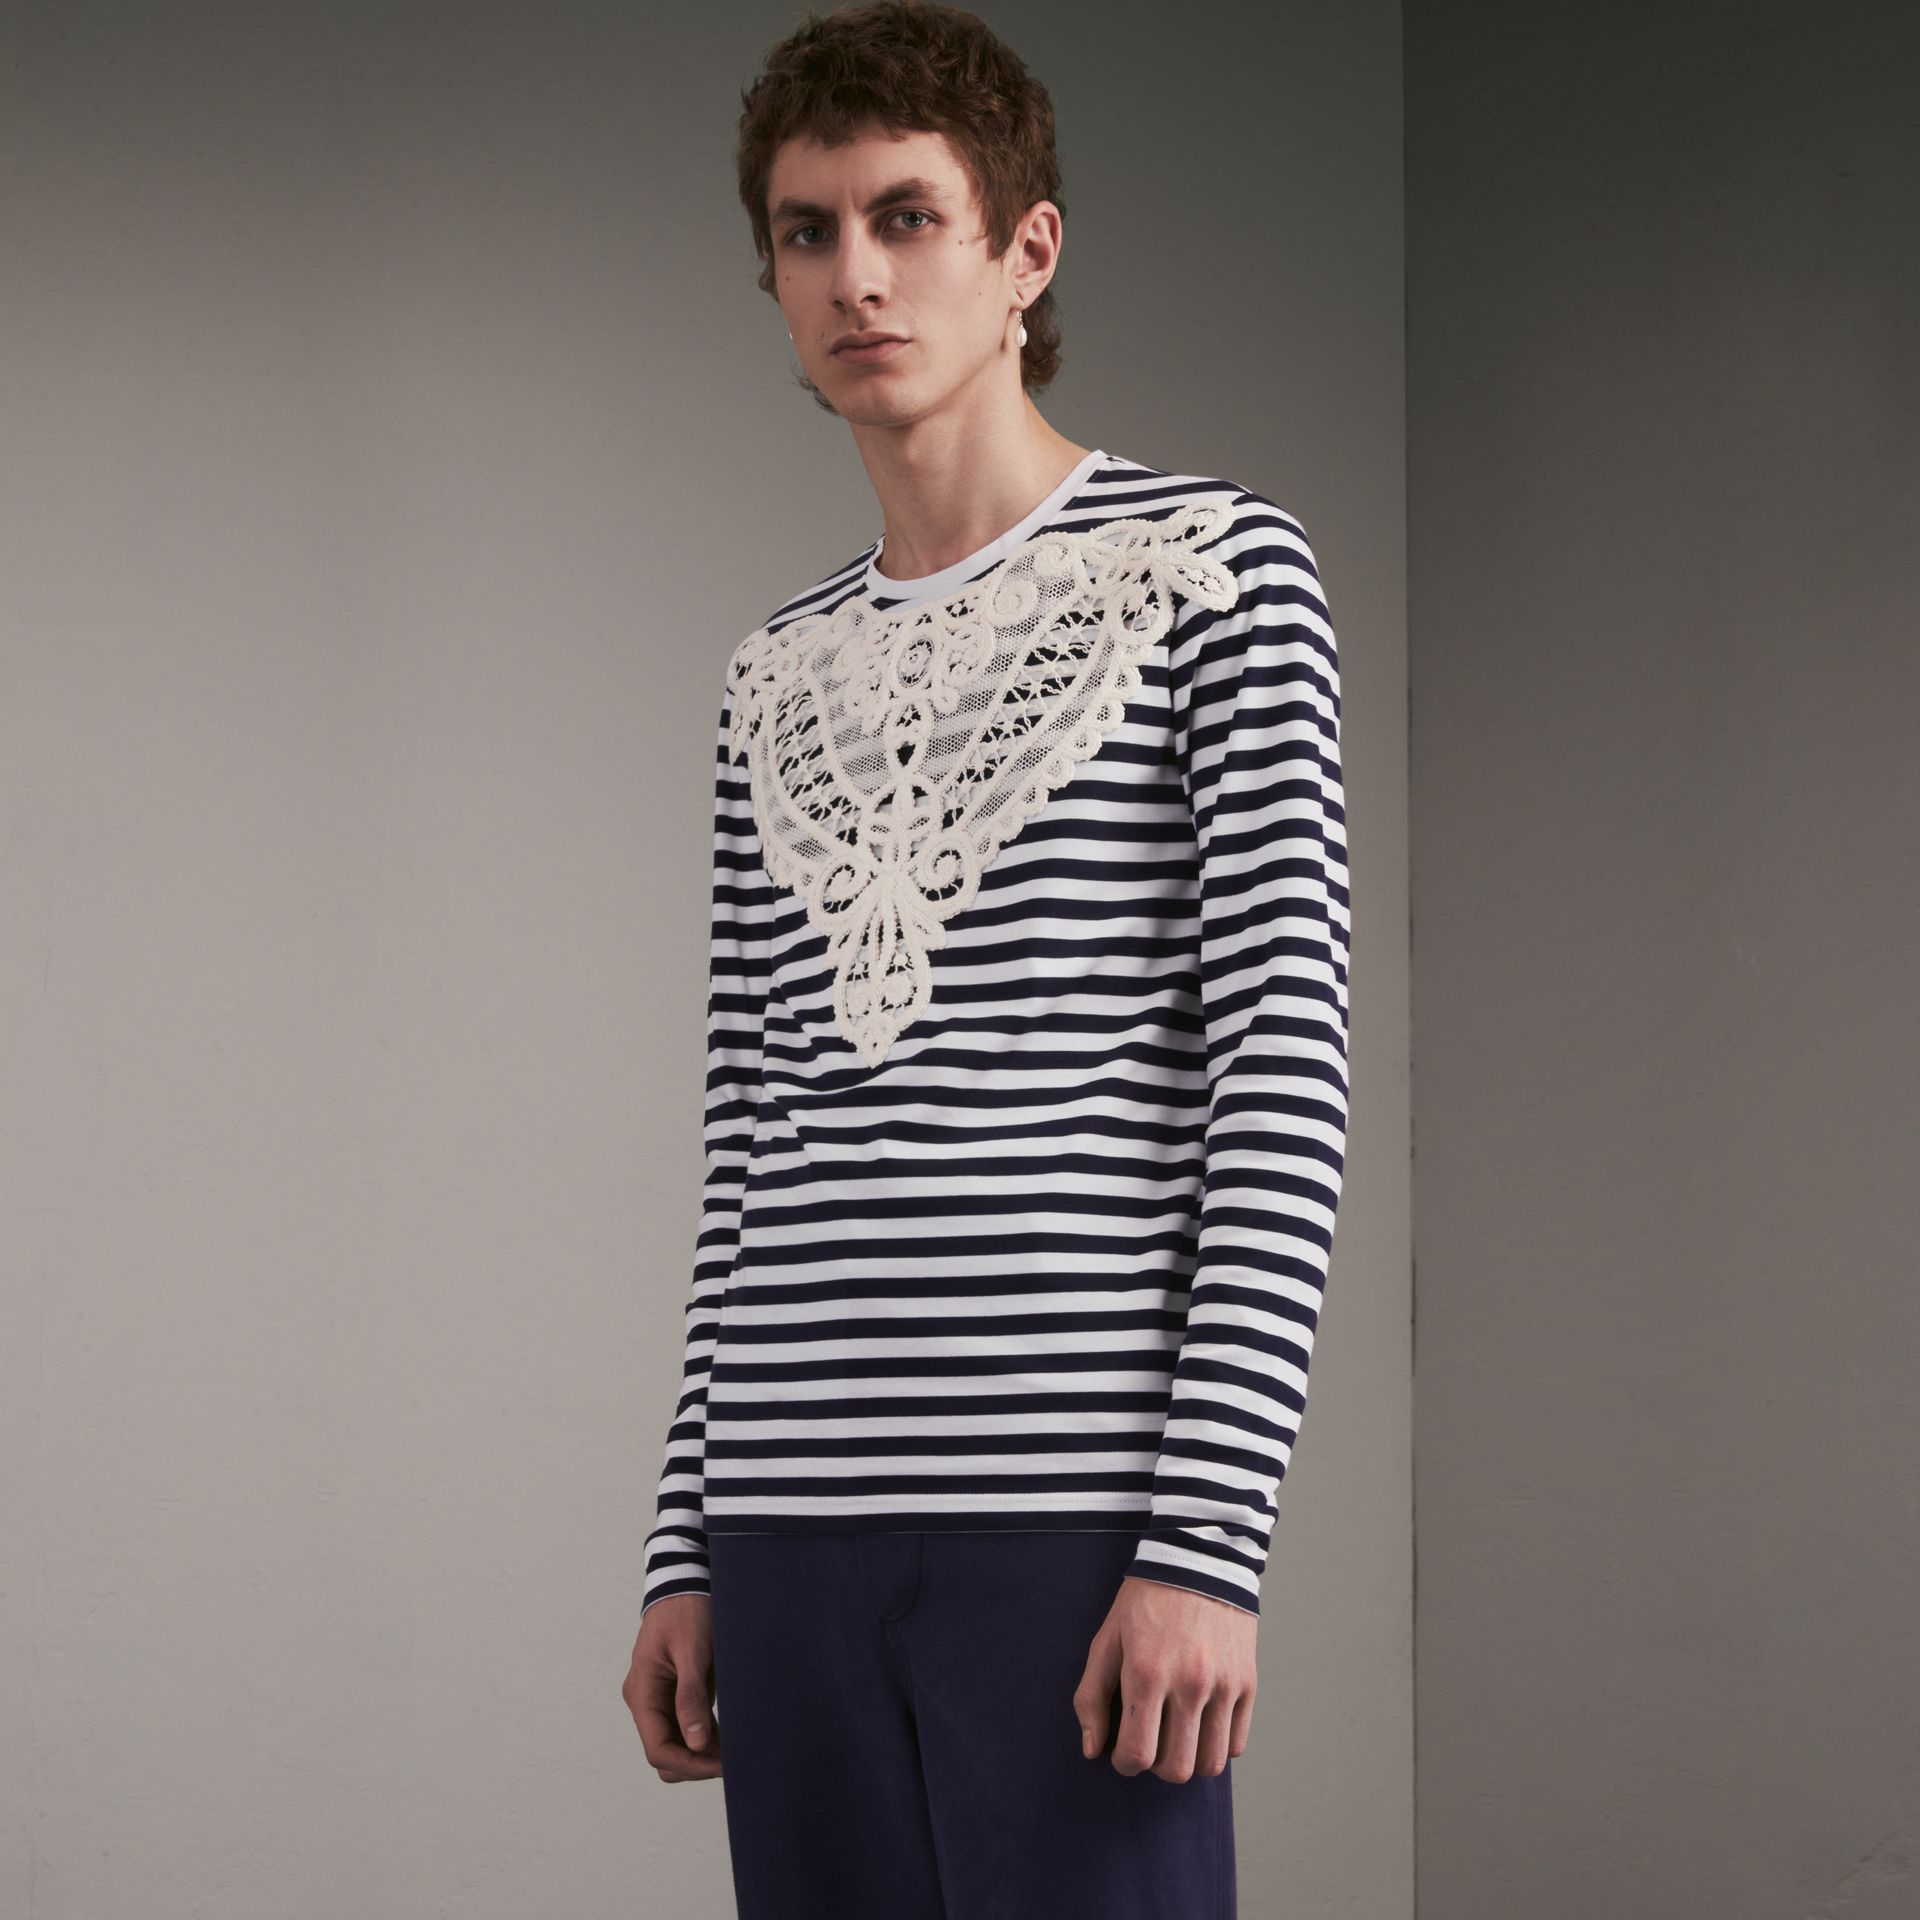 Unisex Lace Appliqué Breton Stripe Cotton Top in Indigo - Women | Burberry - gallery image 2